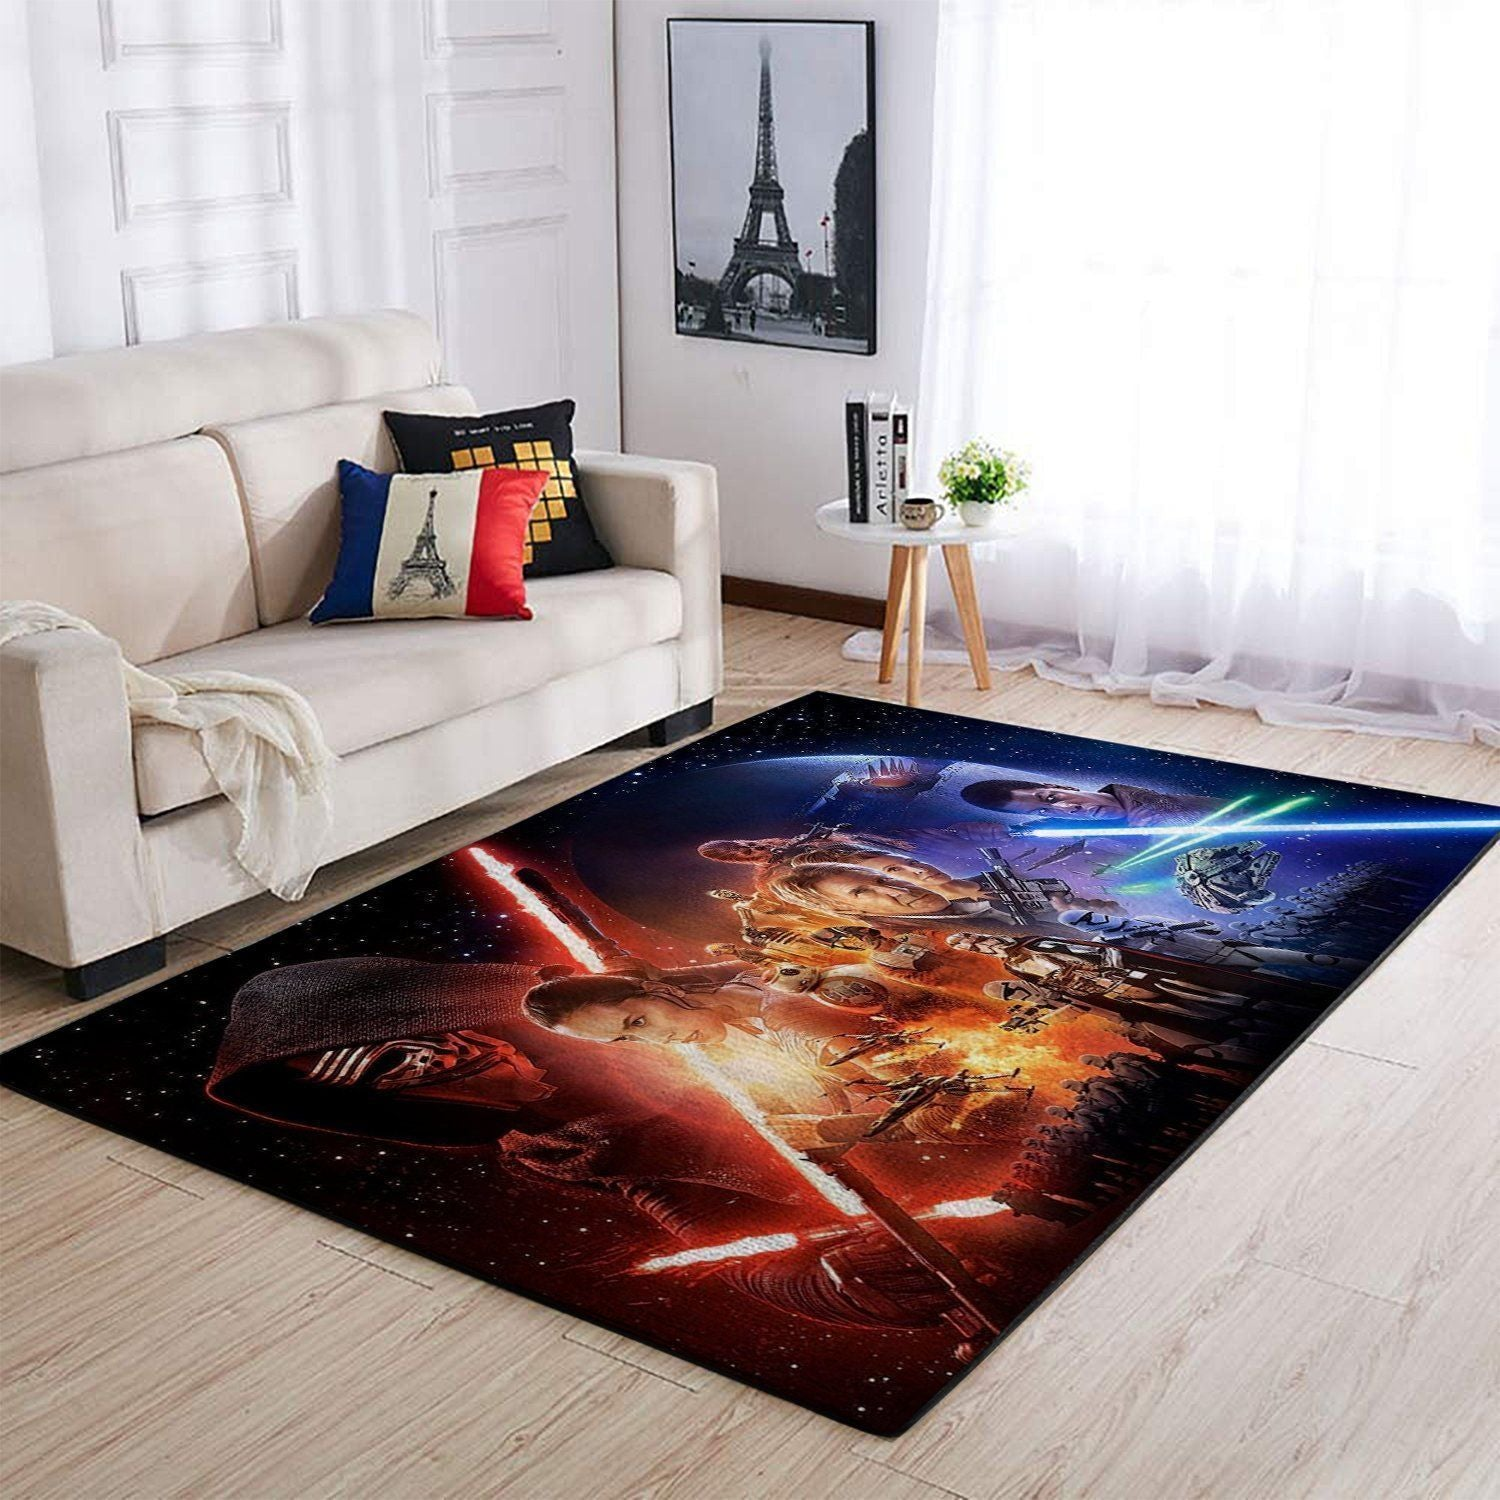 Star Wars Area Rugs - The Last Jedi / Movie Living Room Carpet, Custom Floor Decor 5